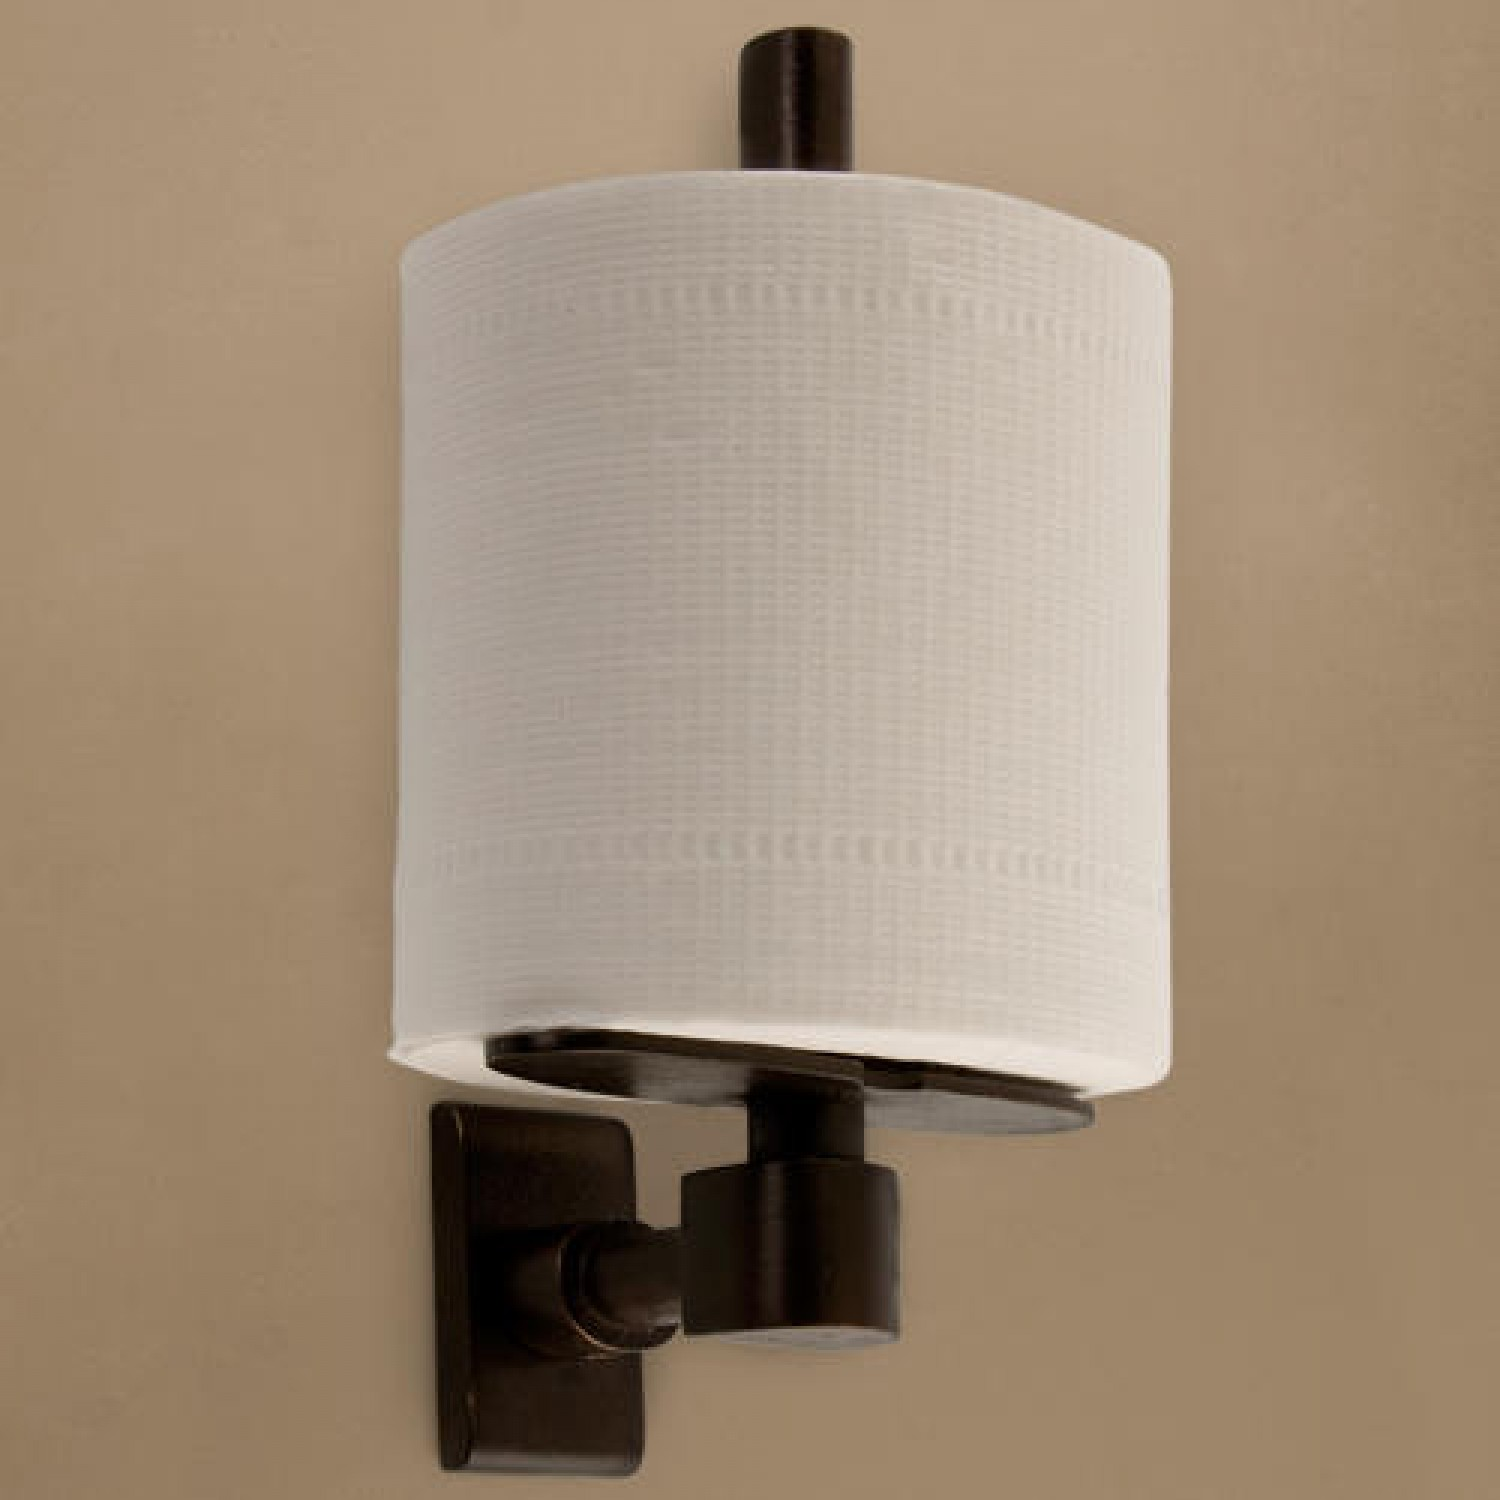 Contemporary Vertical Toilet Paper Holder